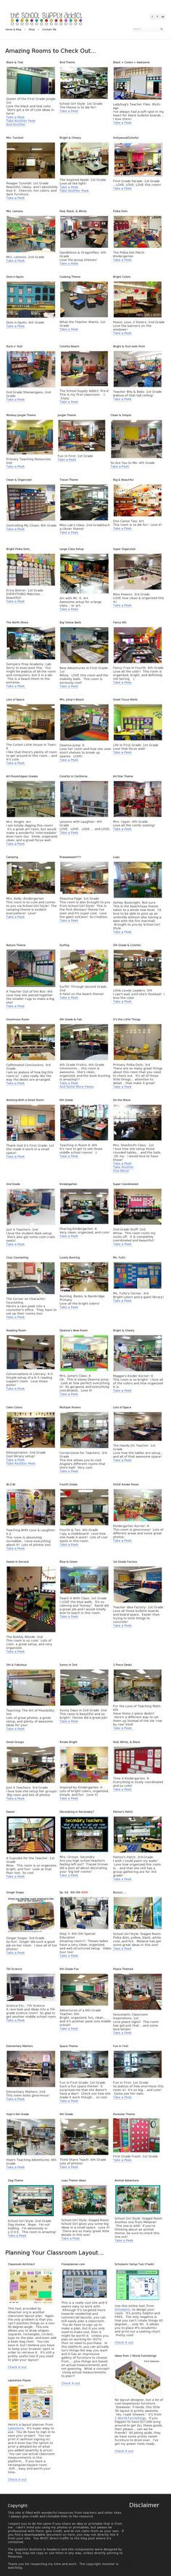 Classroom set-up ideas for the school year! Perfect for elementary and middle grades Classroom Layout, 3rd Grade Classroom, Middle School Classroom, Classroom Organisation, New Classroom, Classroom Setting, Teacher Organization, Classroom Design, Teacher Tools